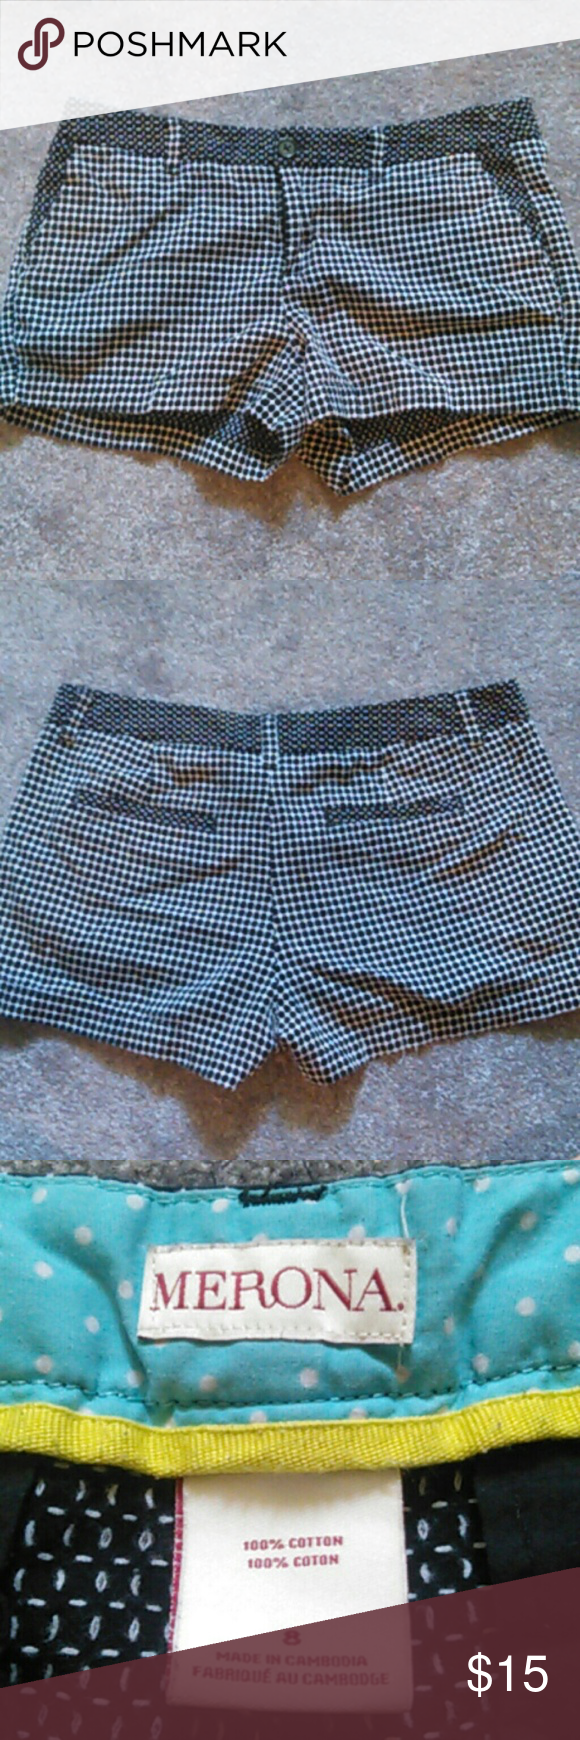 Merona checker patterned shorts EUC Merona checkered/patterned shorts. No holes or stains. White and black.  Size 8 Make an offer! Merona Shorts